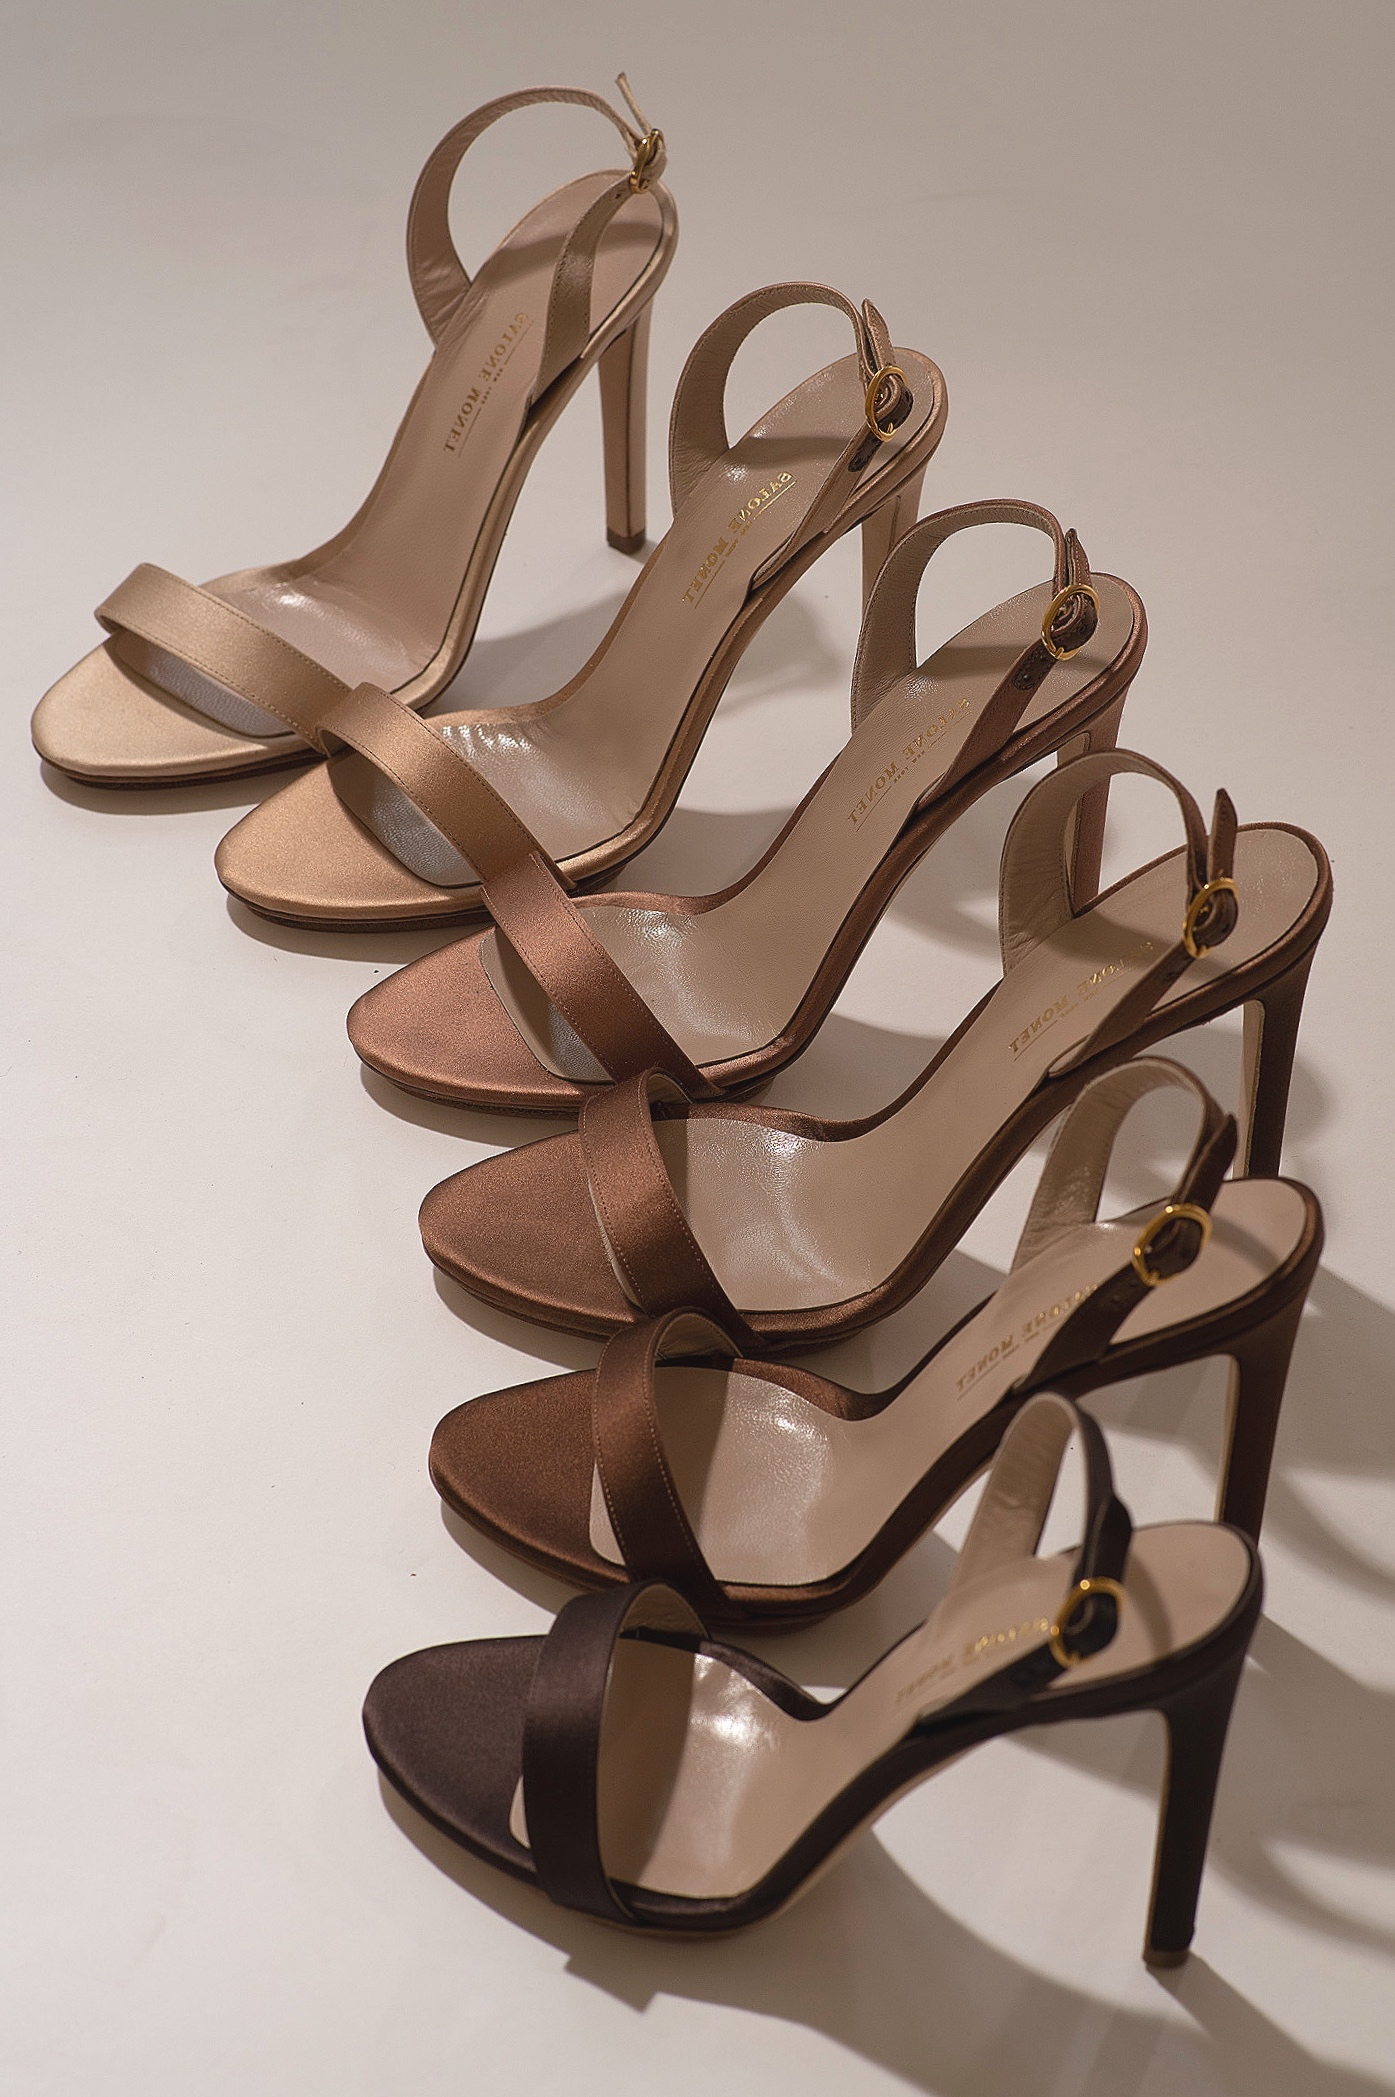 Salone Monet is a collection of inclusive nude heels designed for you and all your favorite looks. -